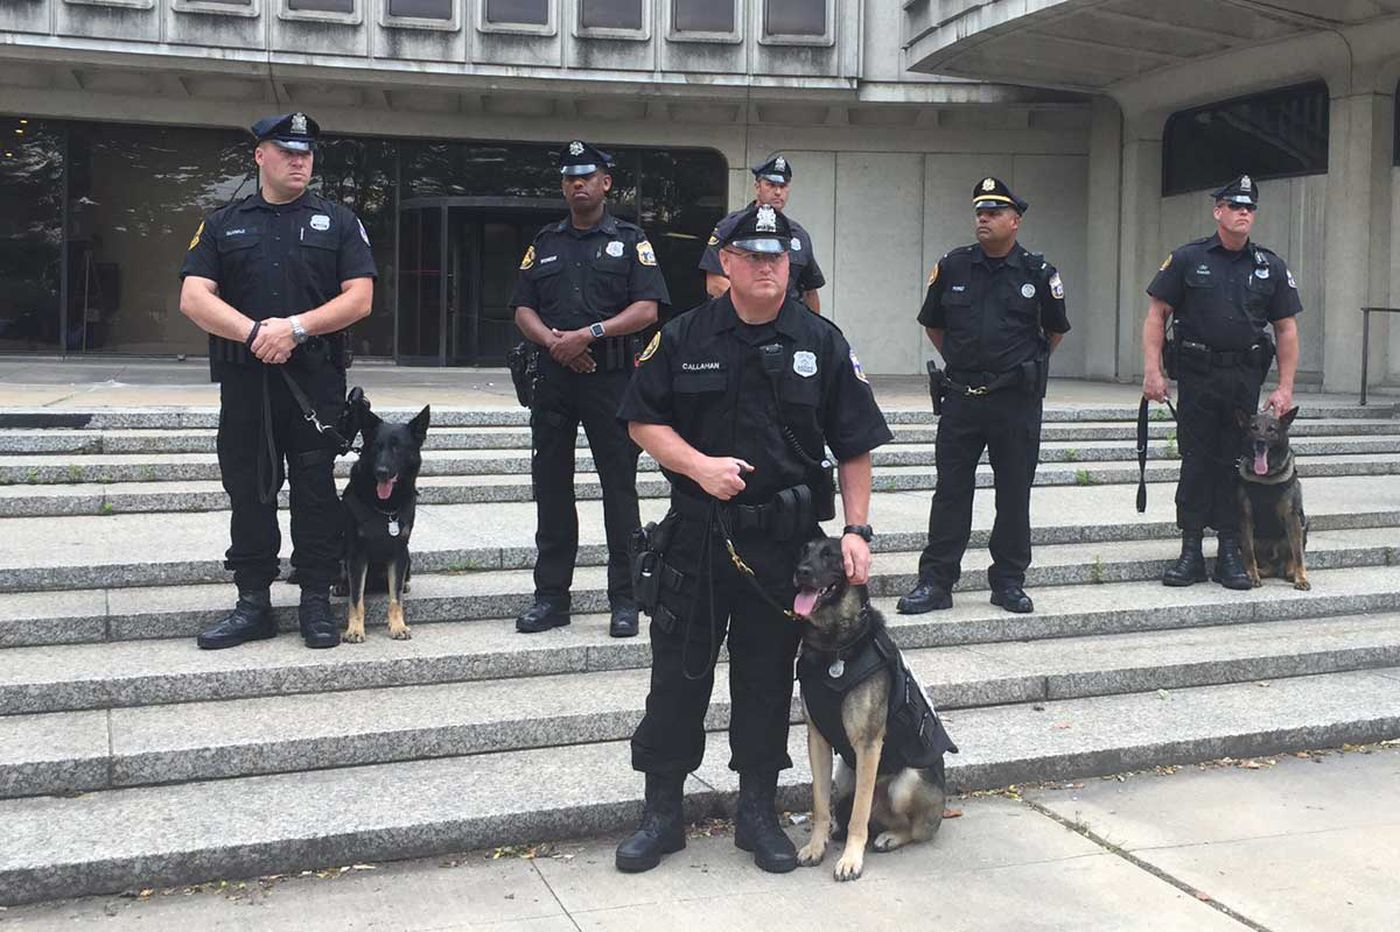 Vested interest: Woman donates 22K to bulletproof Phila. police dogs